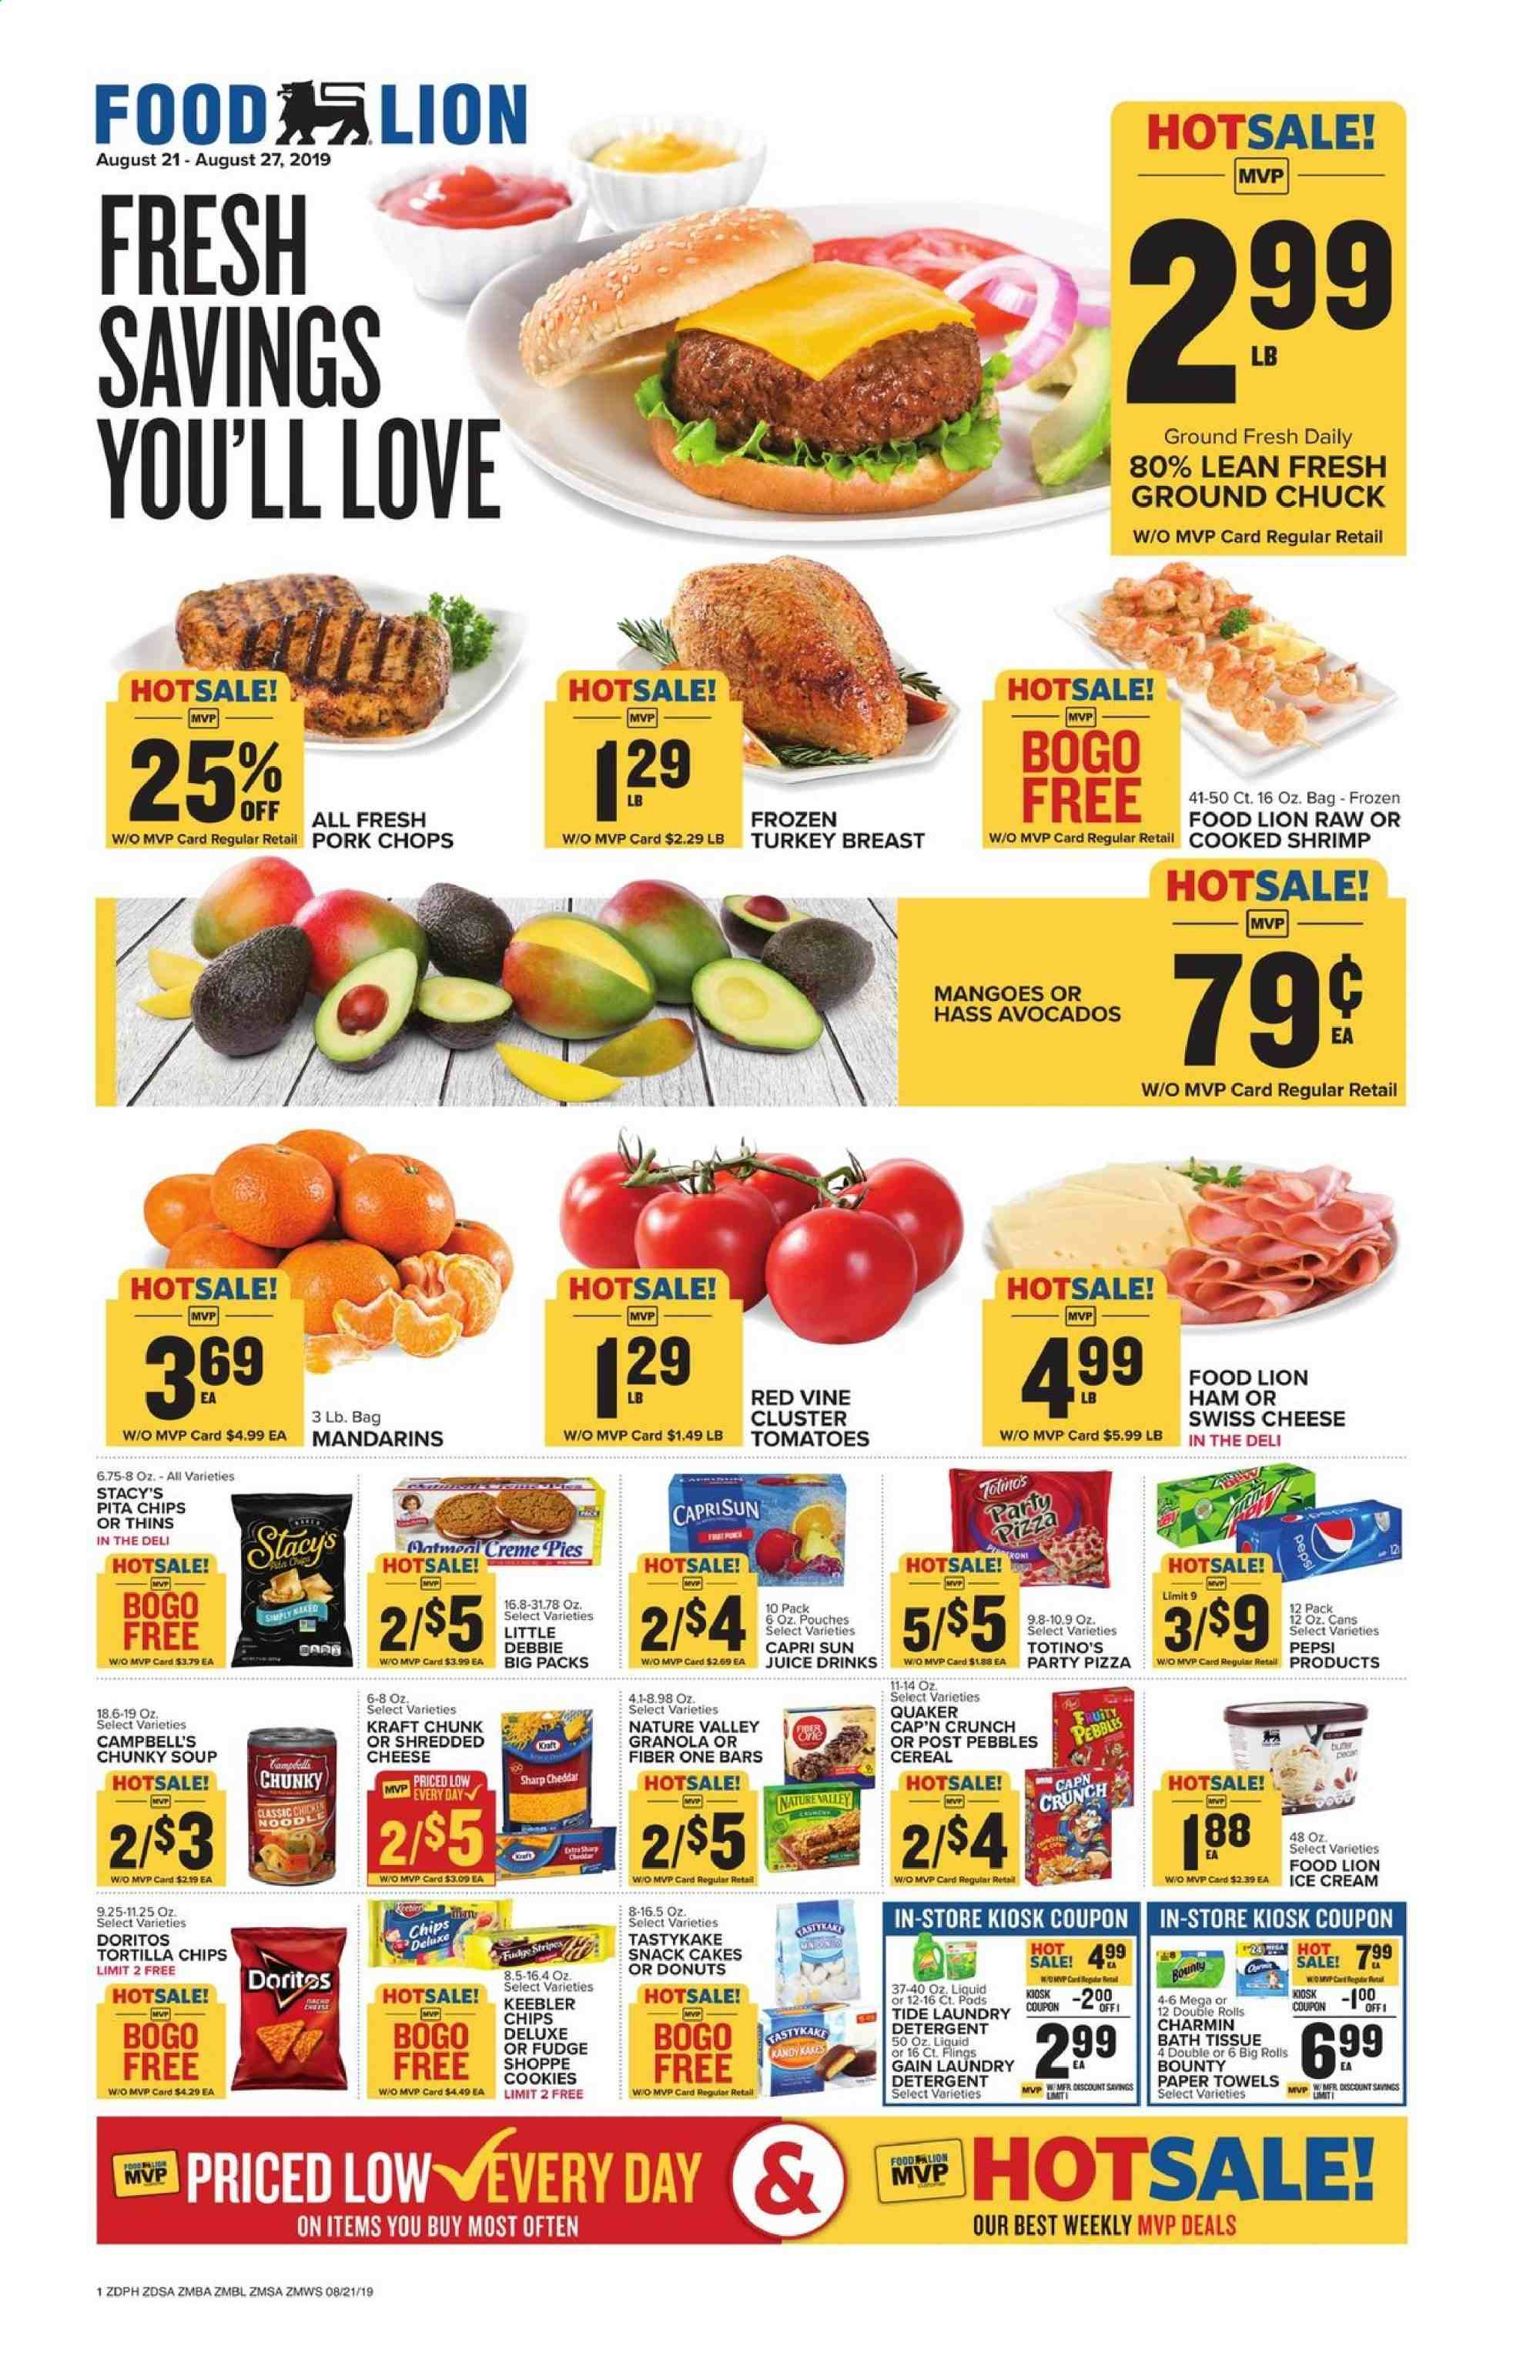 Food Lion Flyer - 08.21.2019 - 08.27.2019 - Sales products - cake, donut, shrimps, Campbell's, pizza, soup, Quaker, Kraft®, ham, shredded cheese, swiss cheese, cheddar, ice cream, mango, cookies, Fudge, Bounty, Keebler, Doritos, tortilla chips, snack, Thins, oatmeal, mandarines, cereals, granola, Cap'n Crunch, Fruity Pebbles, Nature Valley, Fiber One, Capri Sun, Pepsi, juice, turkey breast, chicken, turkey meat, ground chuck, pork chops, pork meat, bath tissue, kitchen towels, paper towels, Charmin, detergent, Gain, Tide, laundry detergent, Sharp. Page 1.